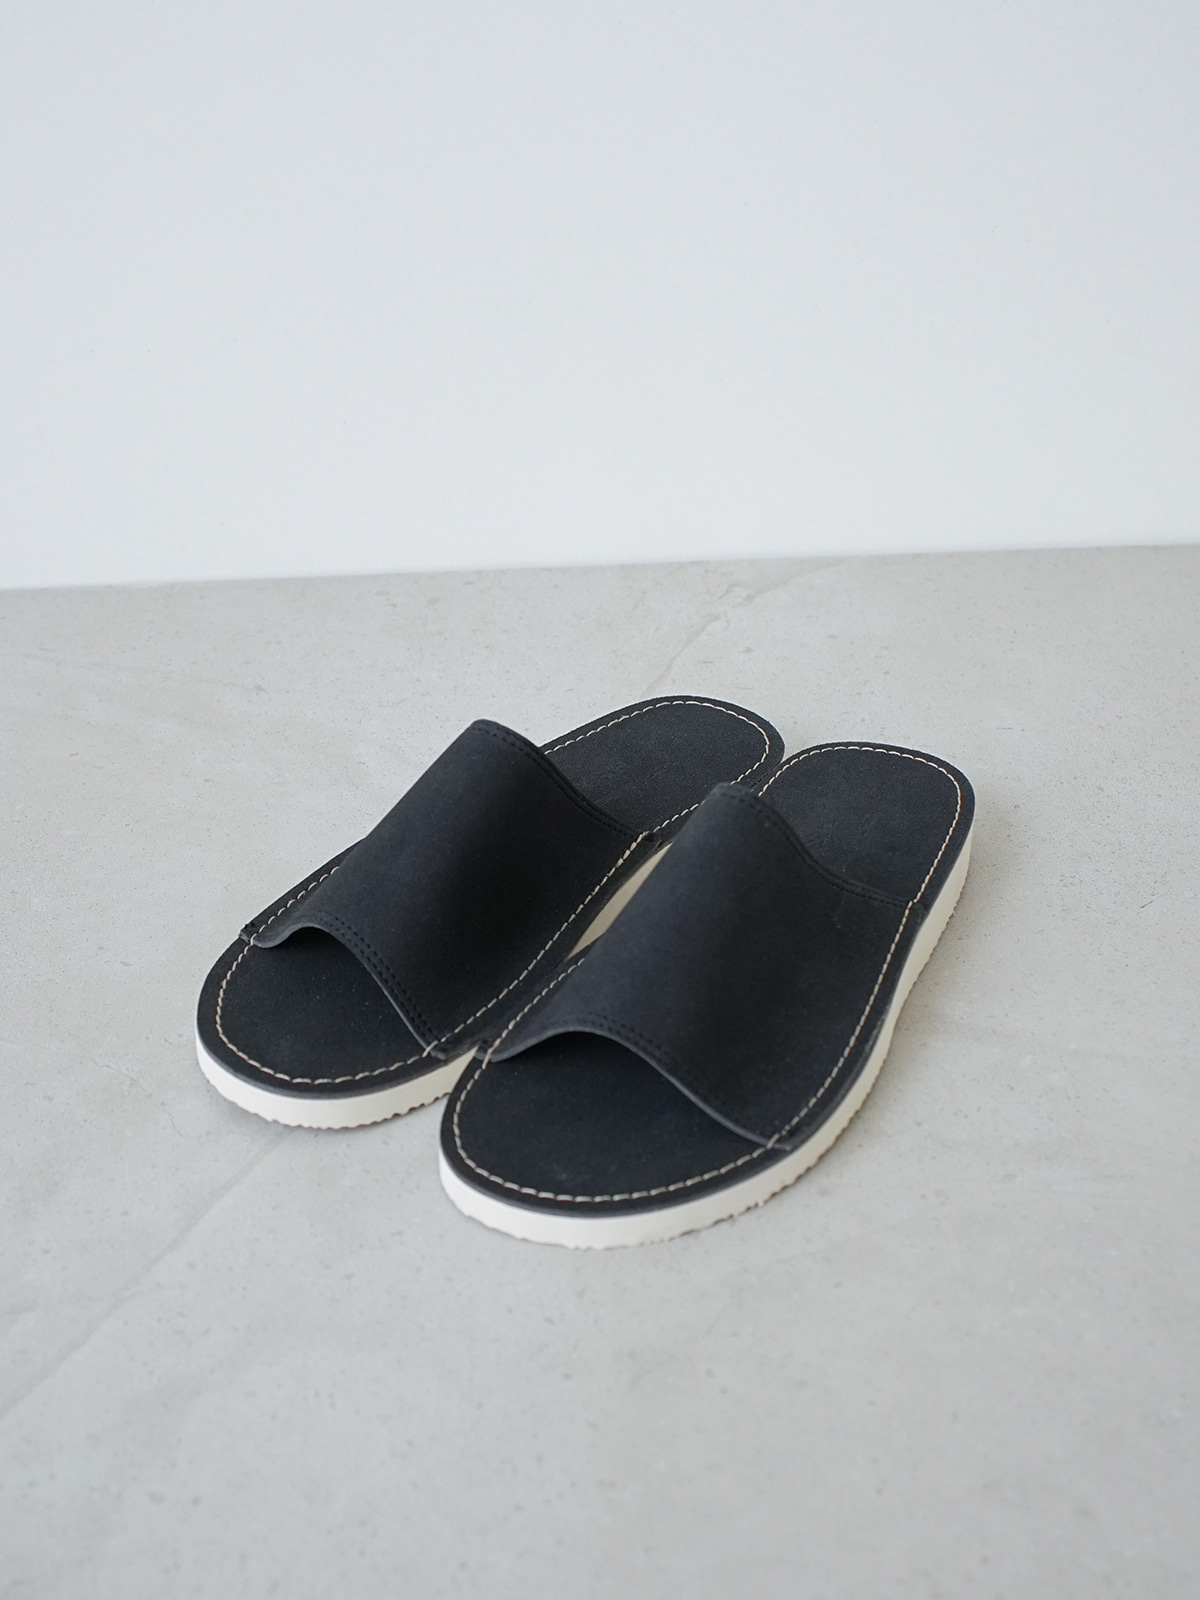 Papi Suede Slipper Black